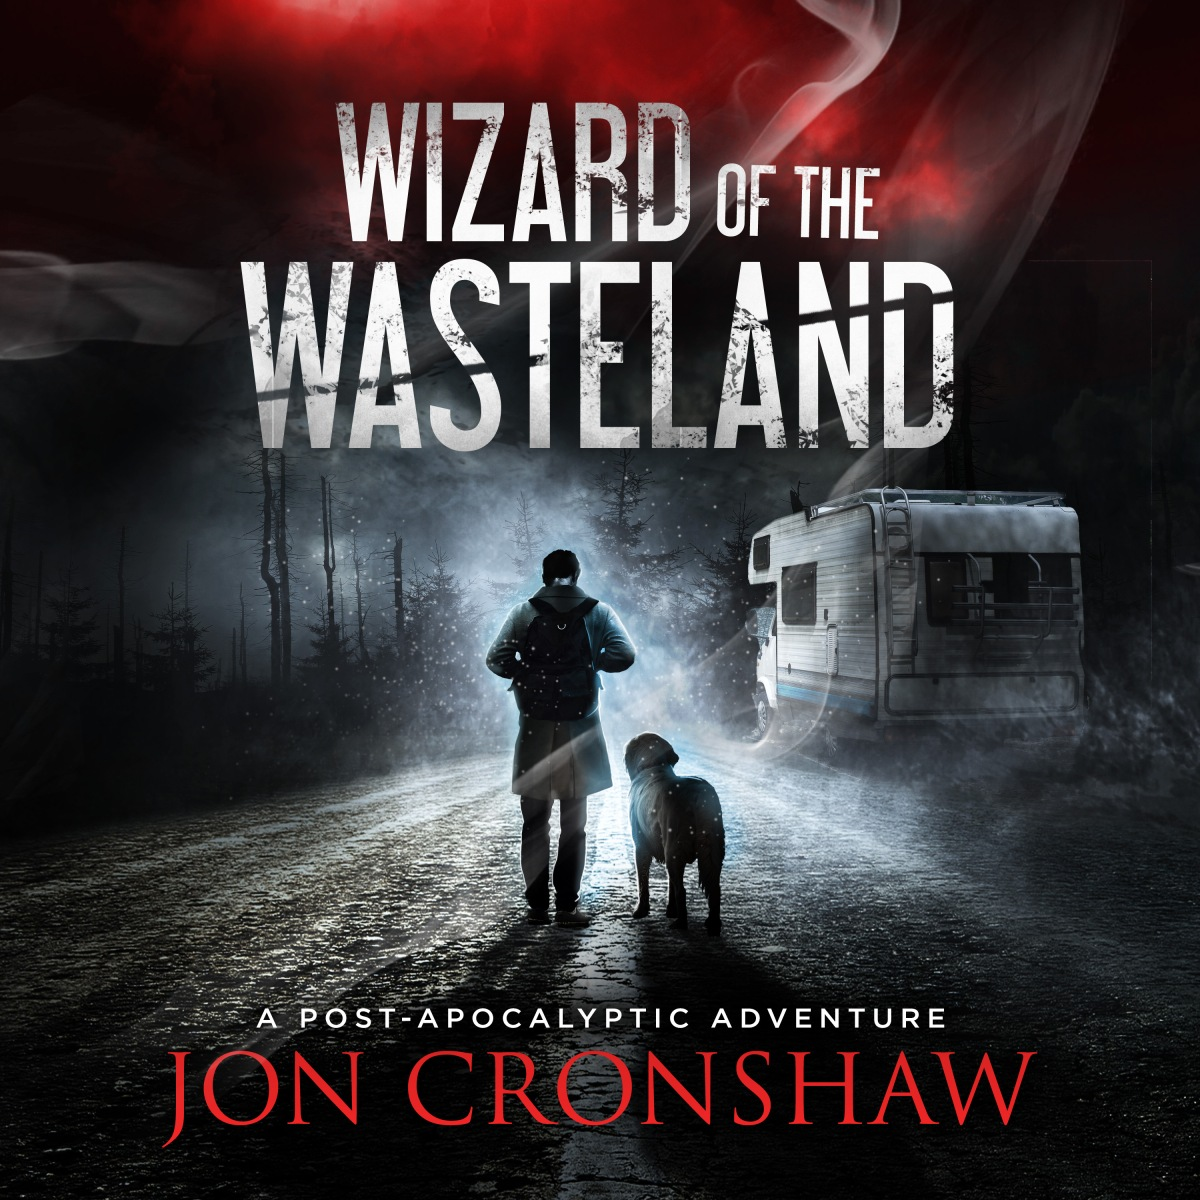 Announcing: The Wizard of the Wasteland audio edition is now available!